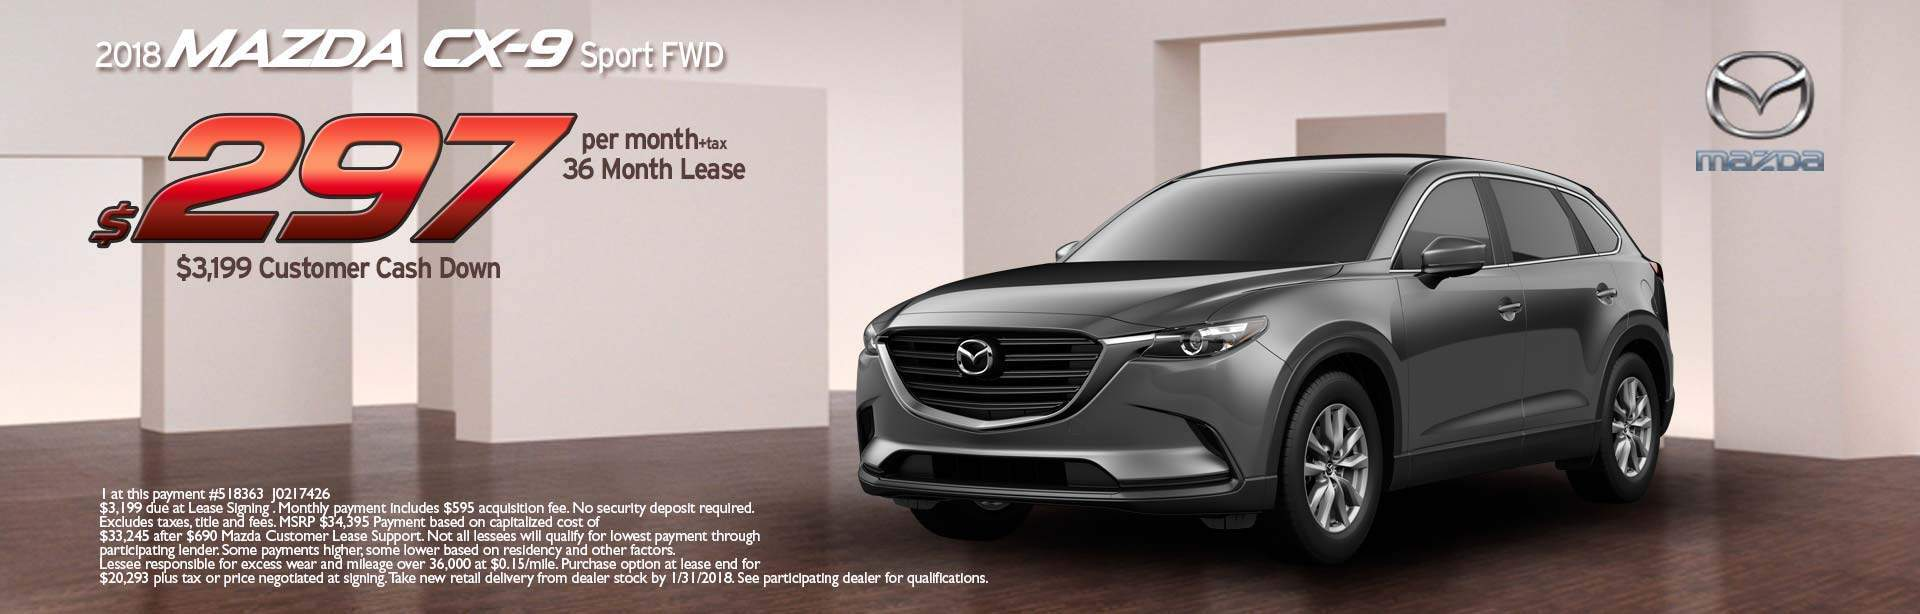 New Mazda CX Carlsbad CA - Mazda lease offer